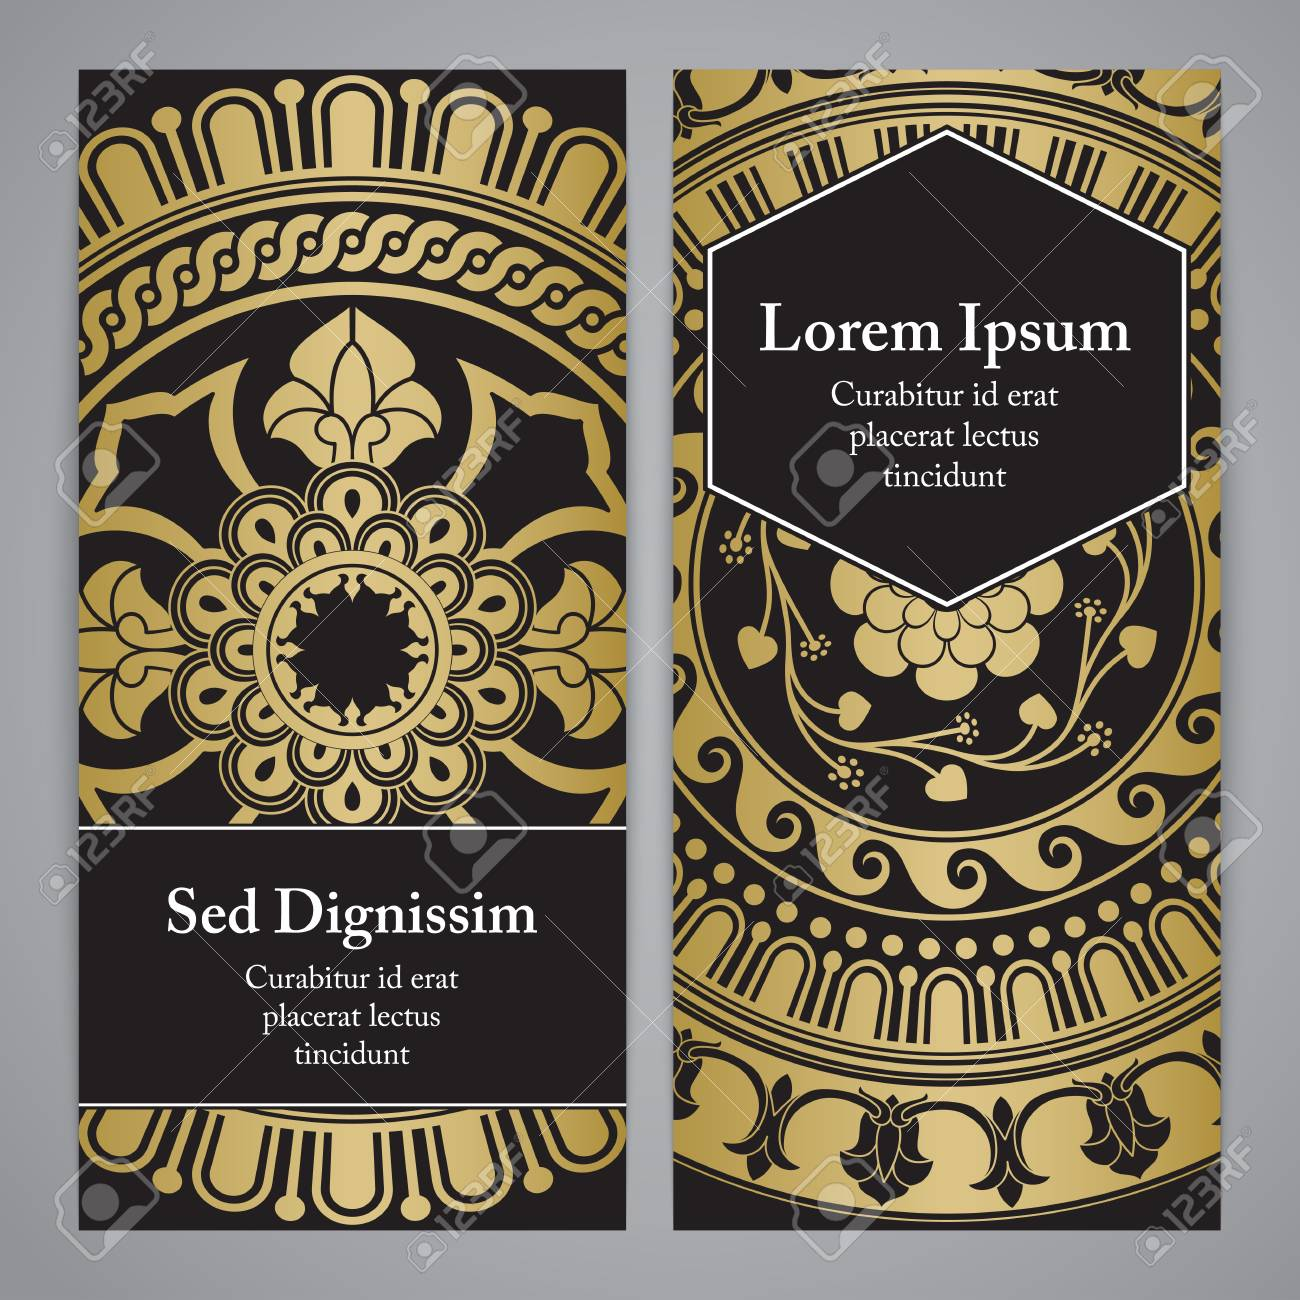 vector vector flyers with mandala in black gold and white colors based on ancient greek islamic and turkish ornaments for invitation banner postcard